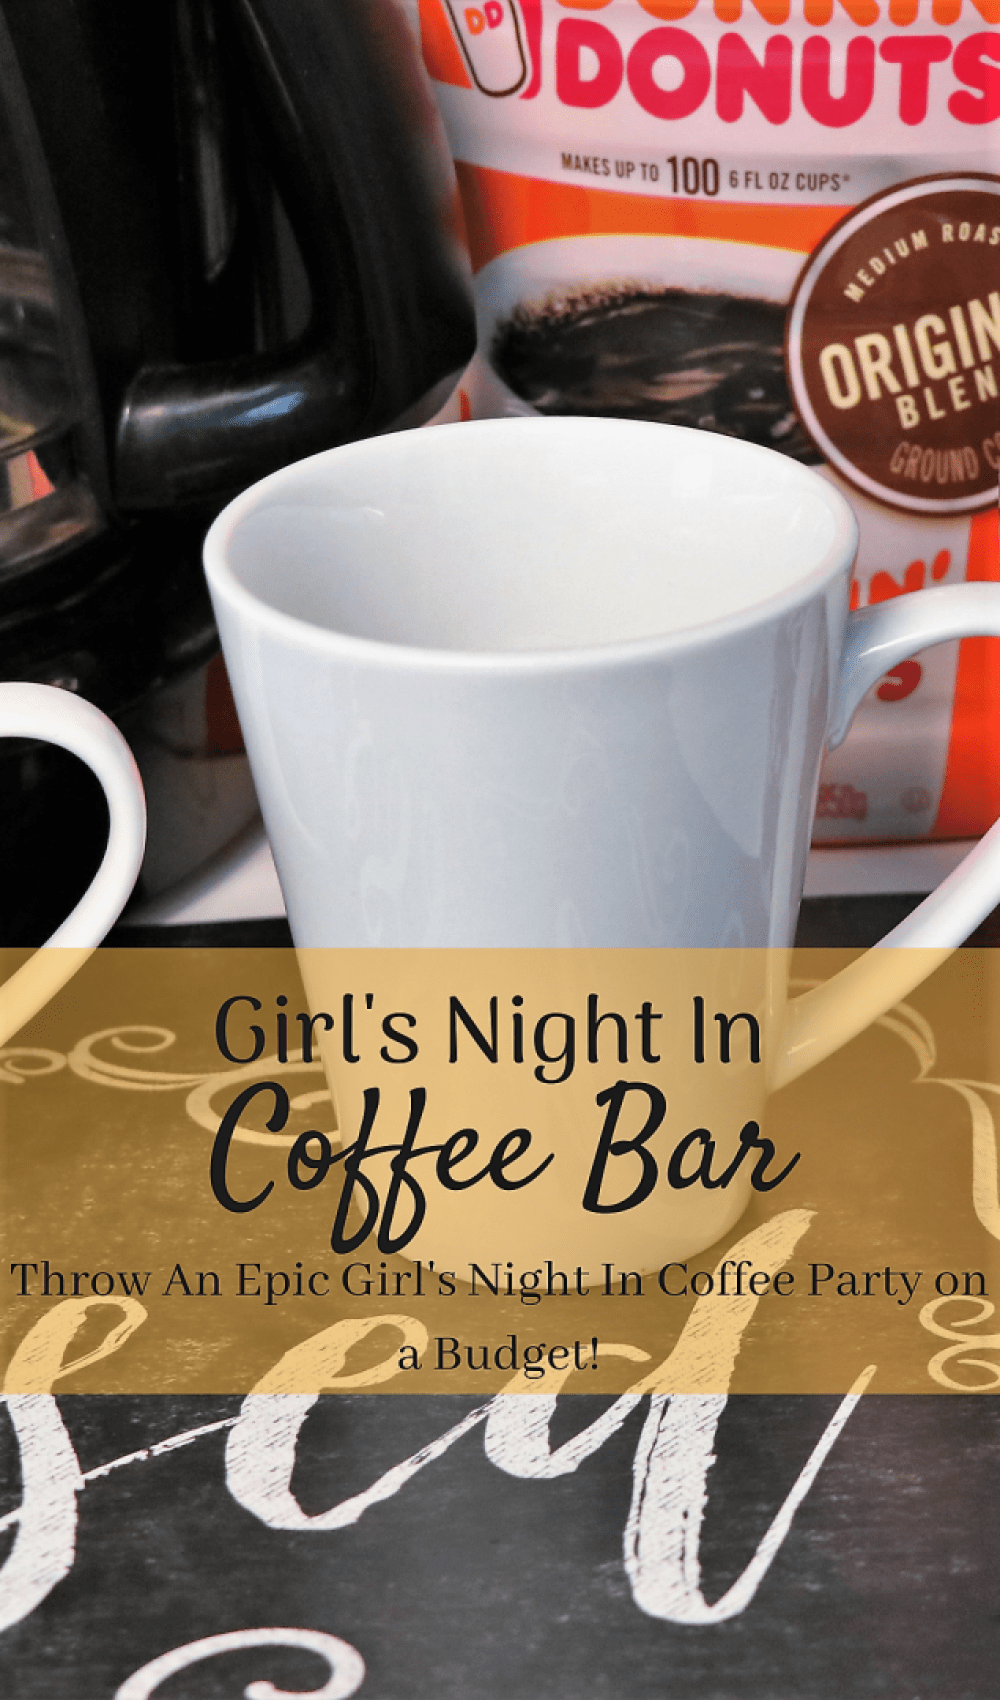 girls' night in coffee bar. Set up your own coffee bar for an epic girls' night in. And see how you can make this super cute DIY sharpie coffee mug that your guests can take home with them #CanYouCoffee #CollectiveBias #ad